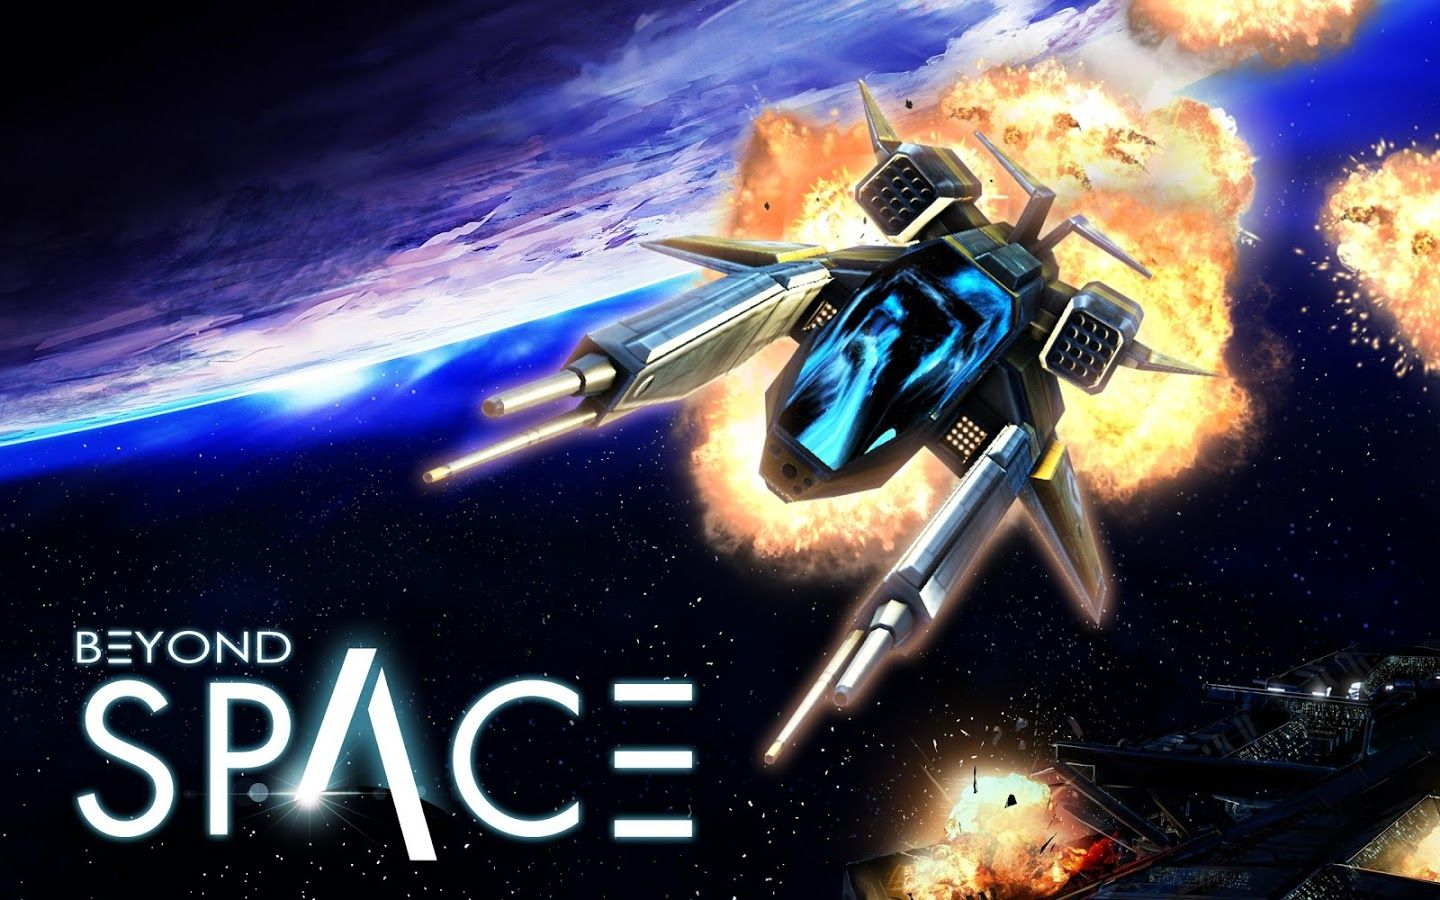 Beyond Space Android Apps on Google Play (With images